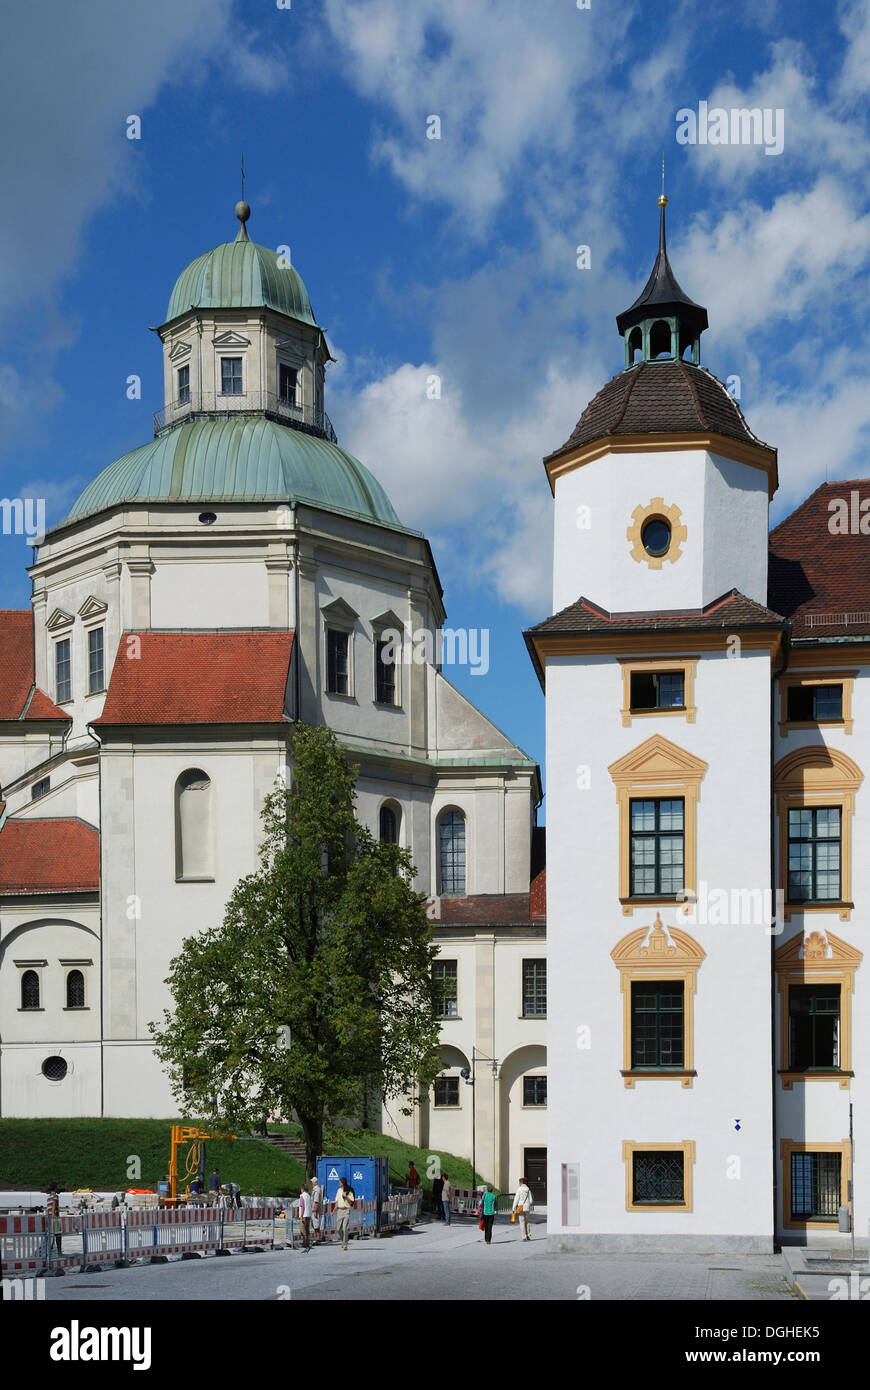 Saint Lawrence Basilica in Kempten. - Stock Image